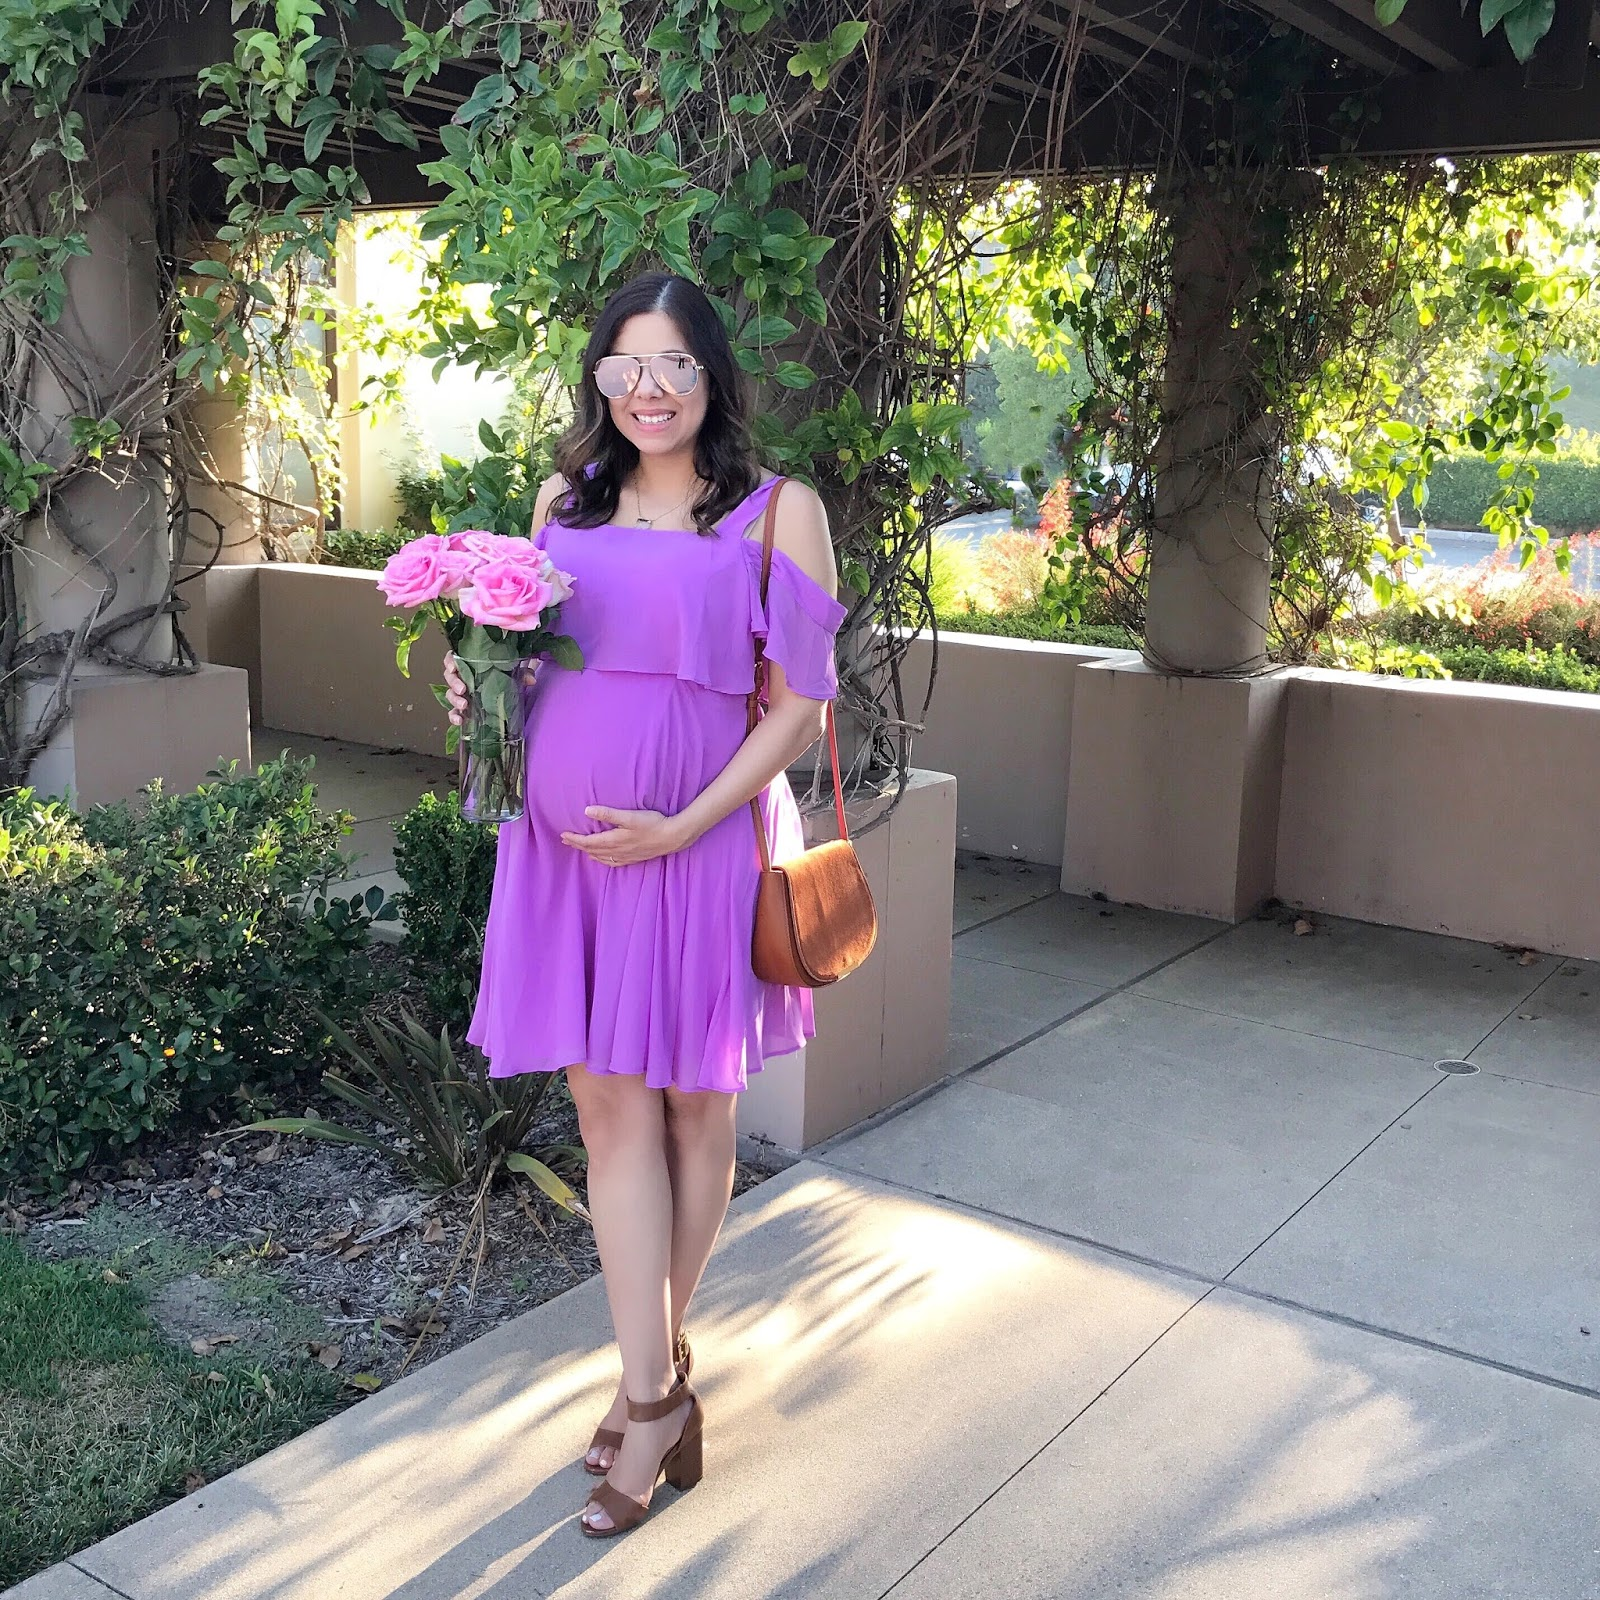 ASOS Maternity Dress, San Diego Fashion Blogger, San Diego mommy blogger, San Diego lifestyle blogger